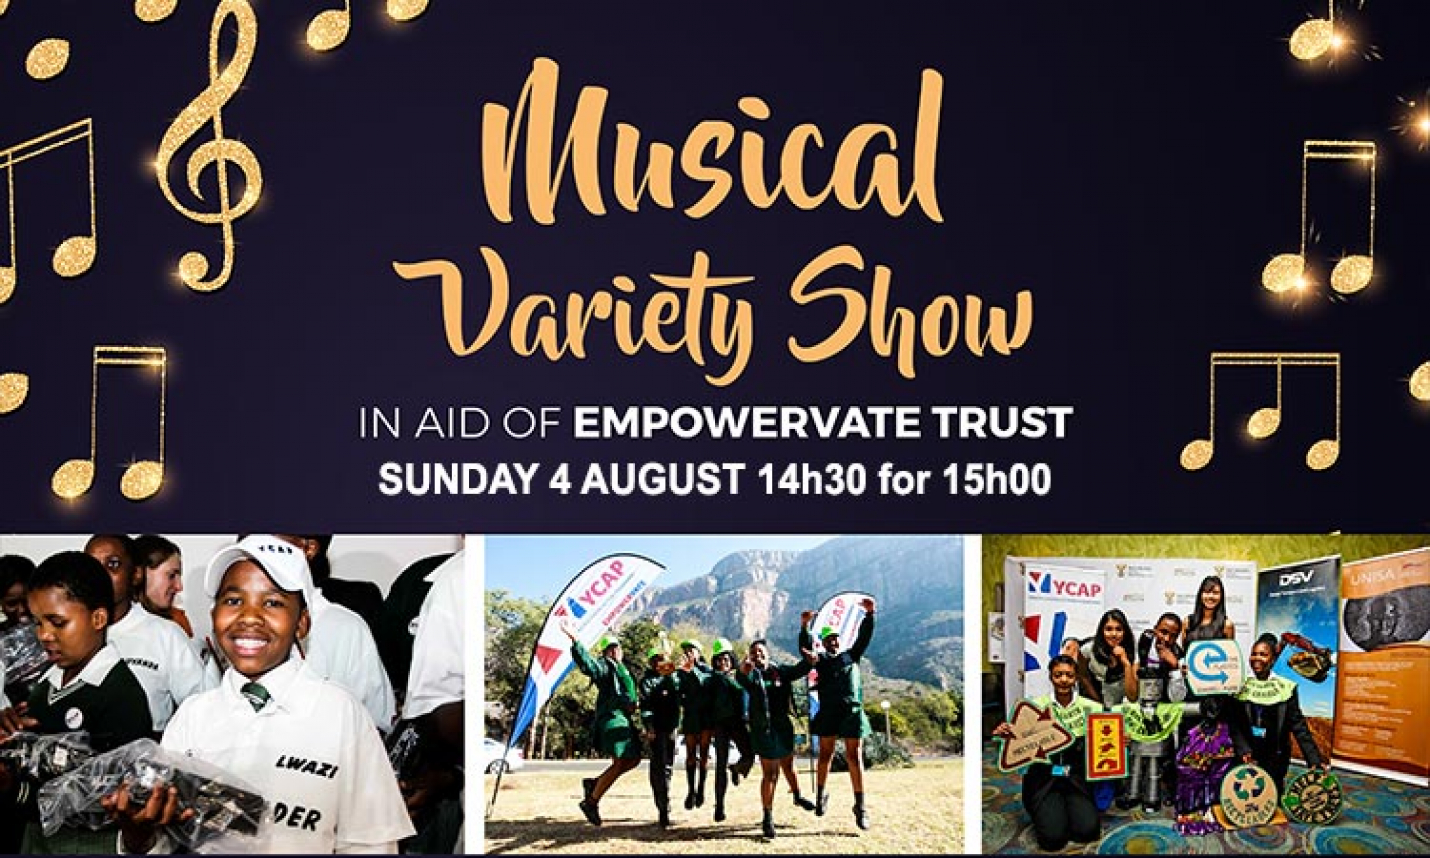 Musical Variety Show in Aid of Empowervate